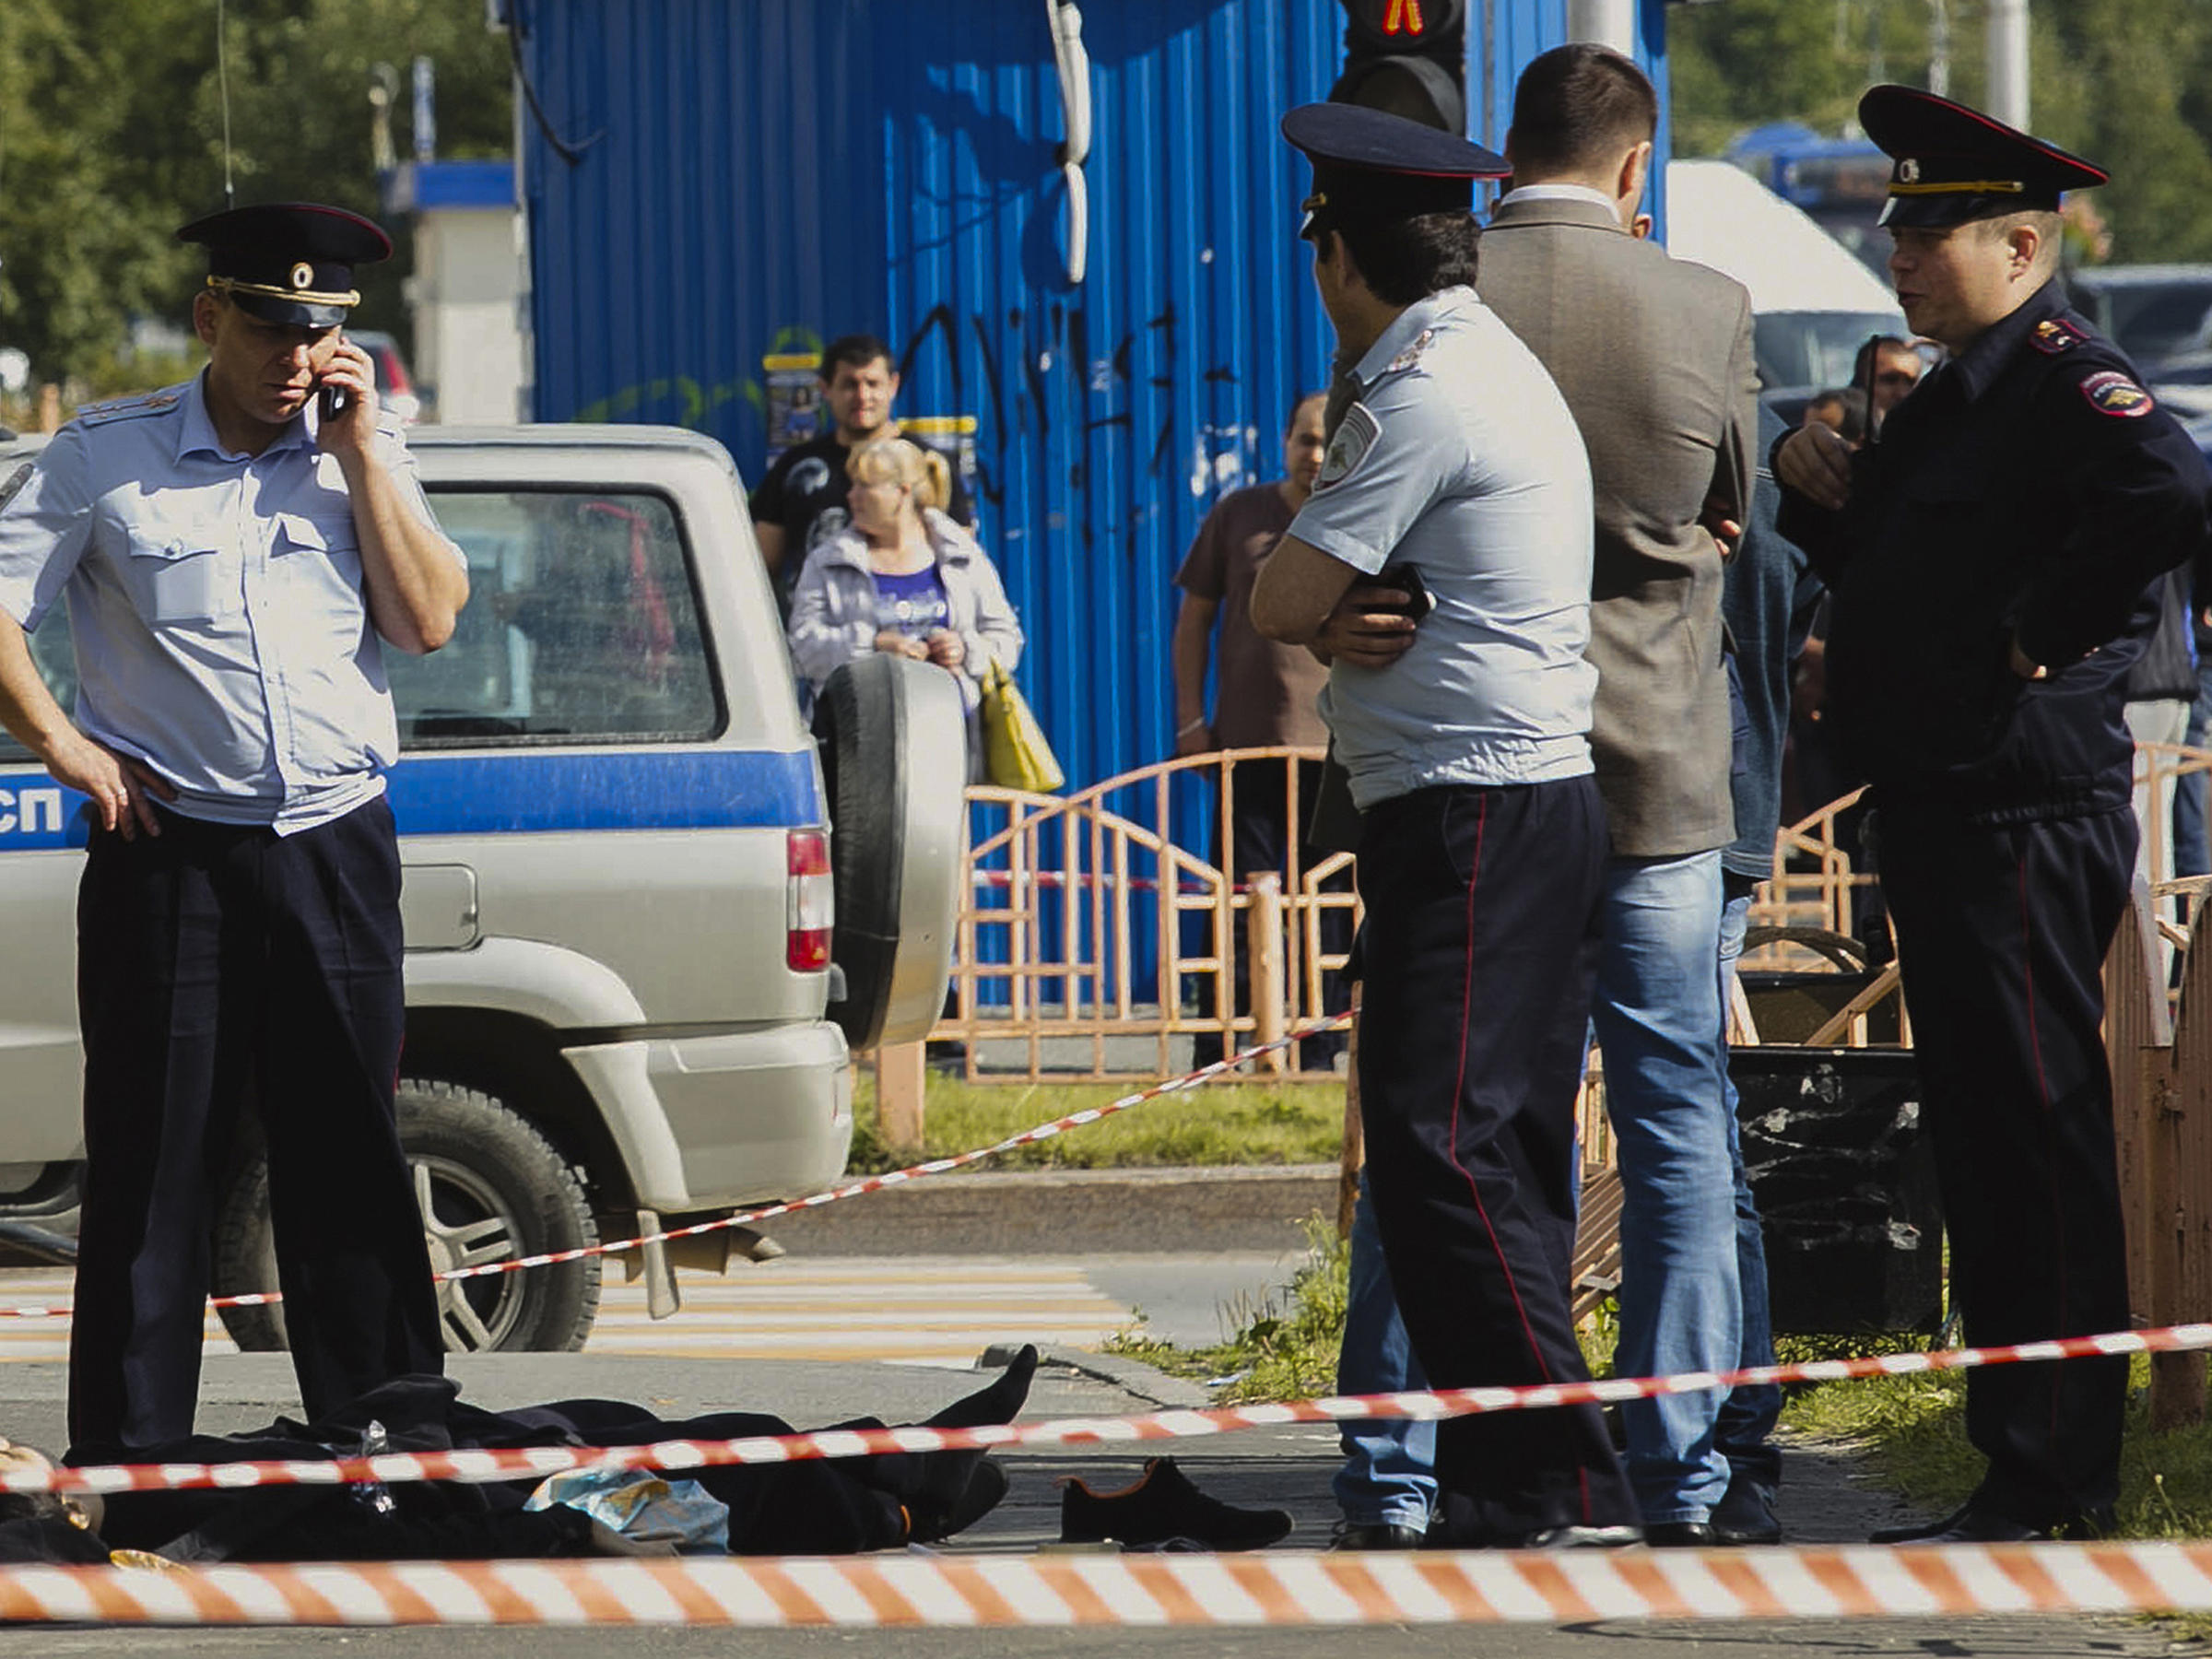 8 injured in Russian Federation  knife attack